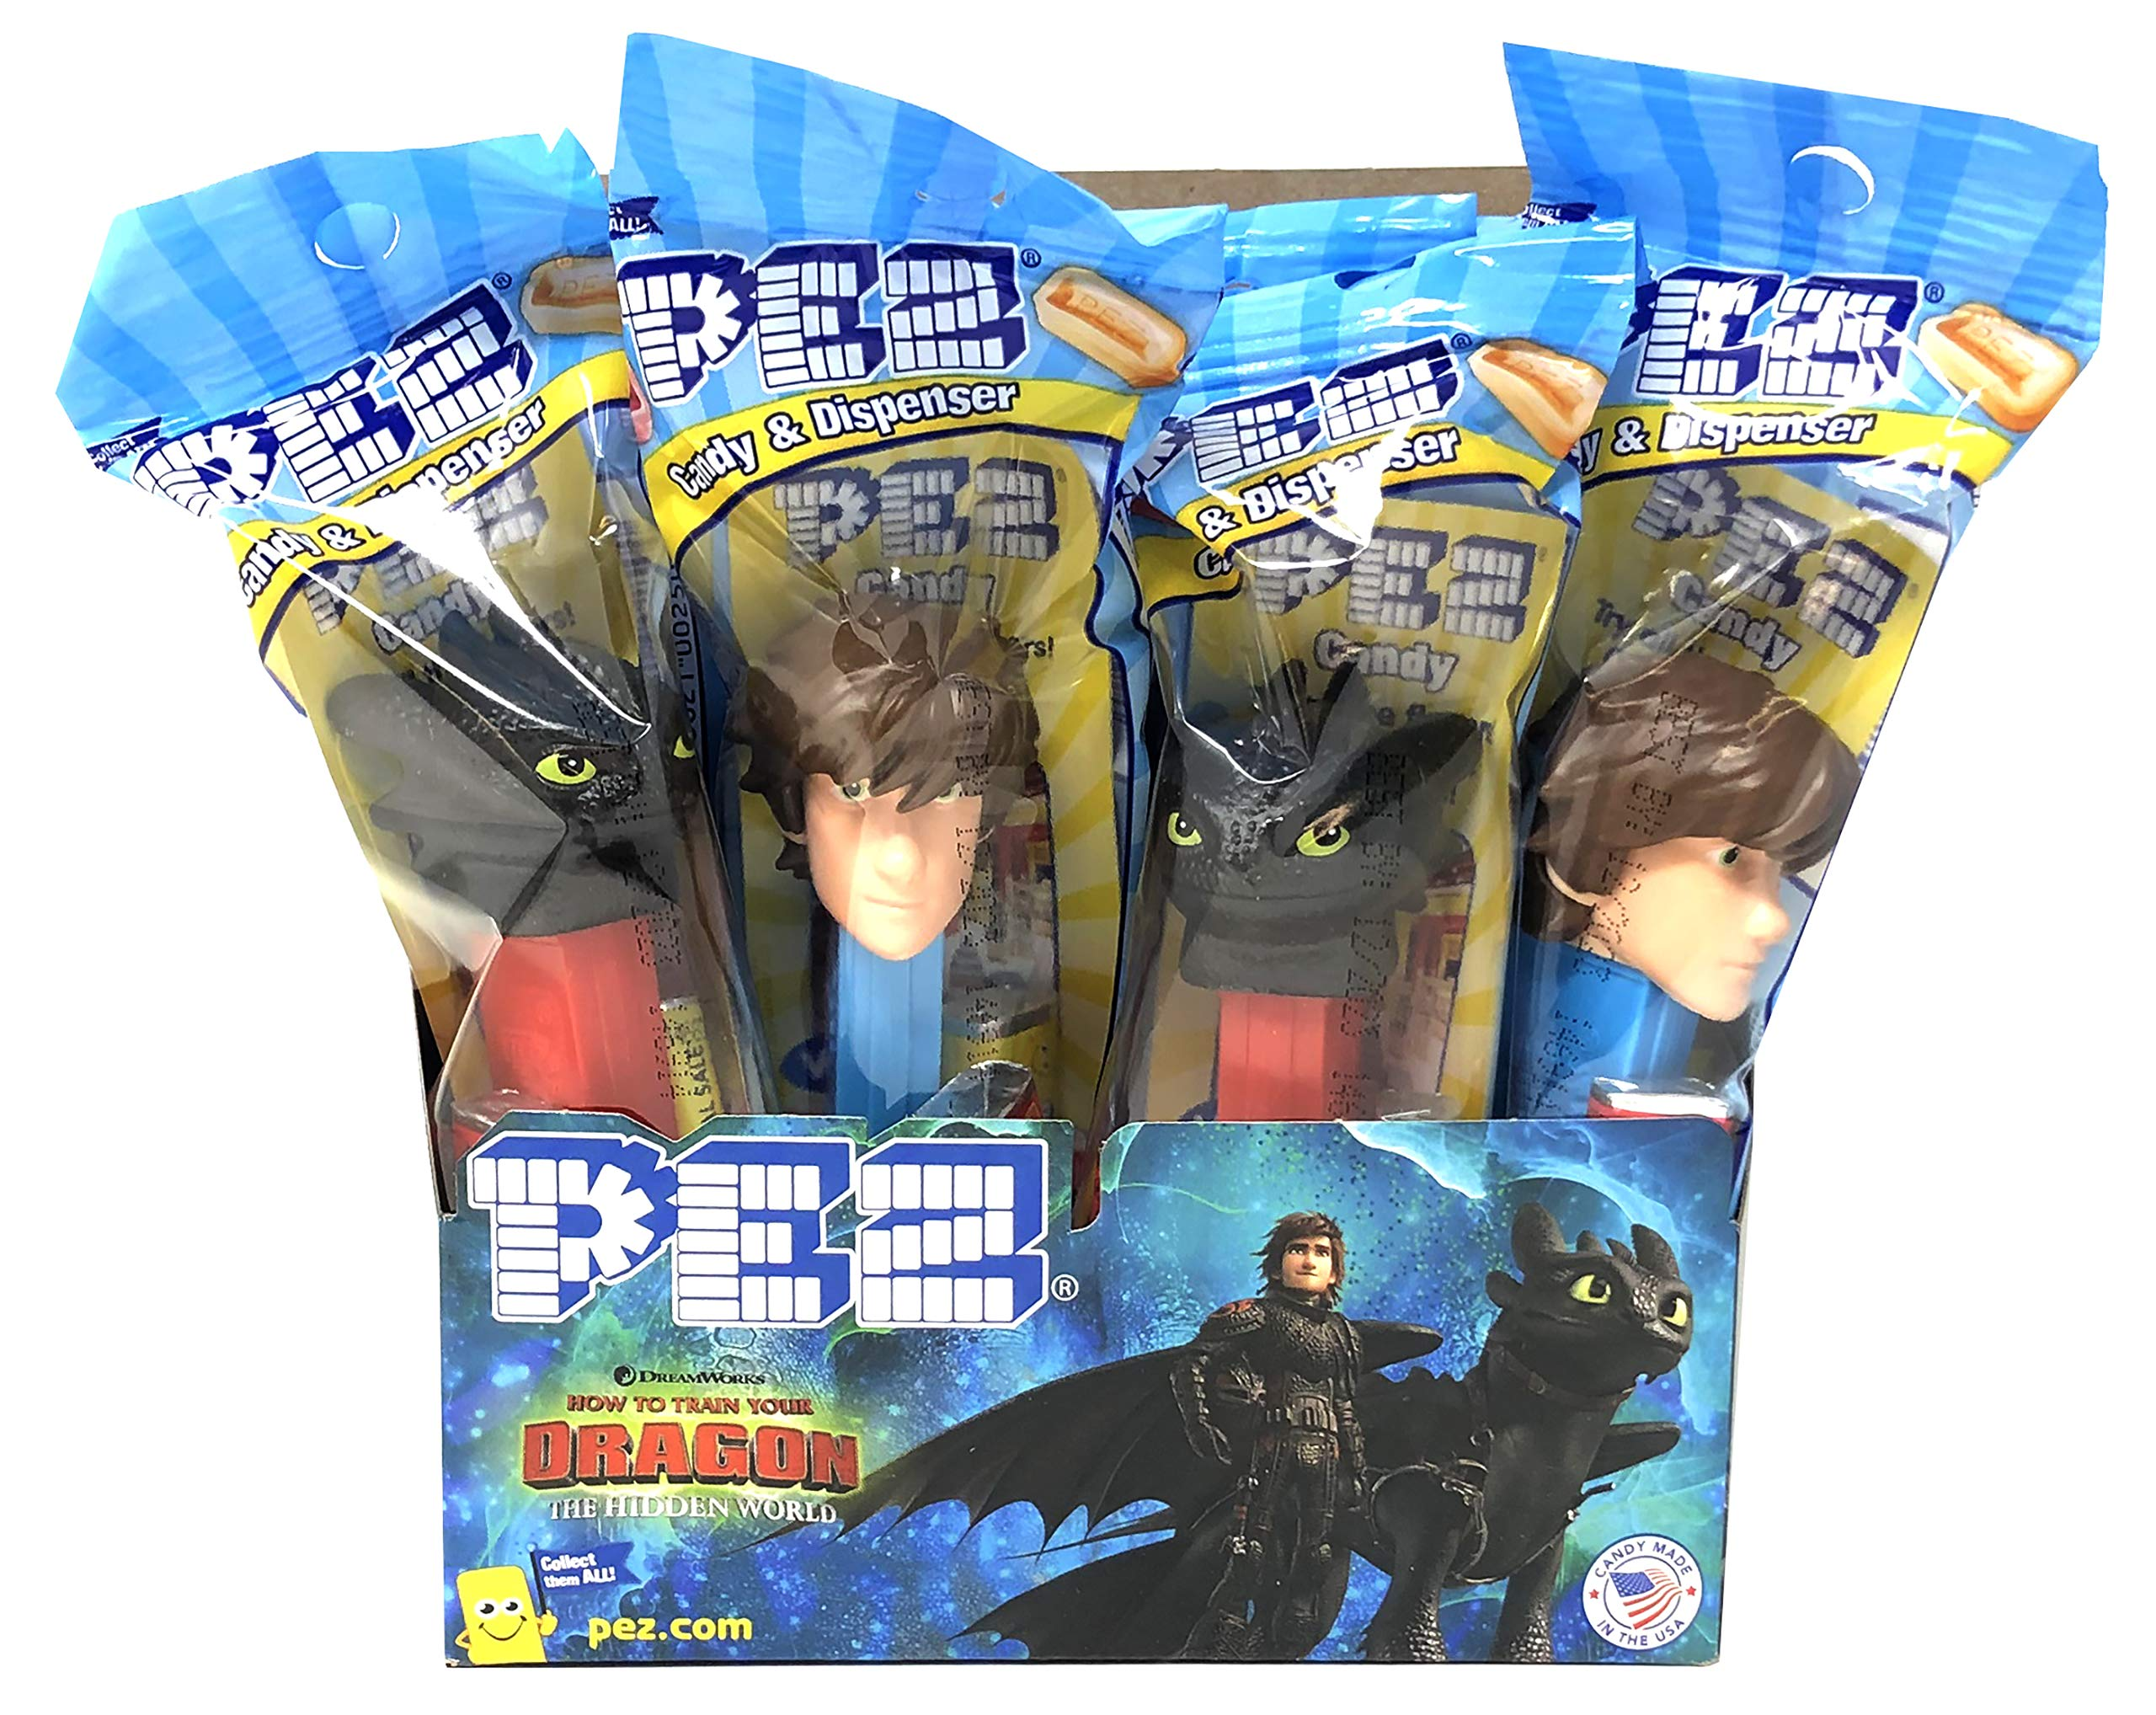 Pez How to Train Your Dragon Candy Dispensers Individually Wrapped Candy and Dispensers with Tru Inertia Kazoo (12 Pack) by Tru Inertia